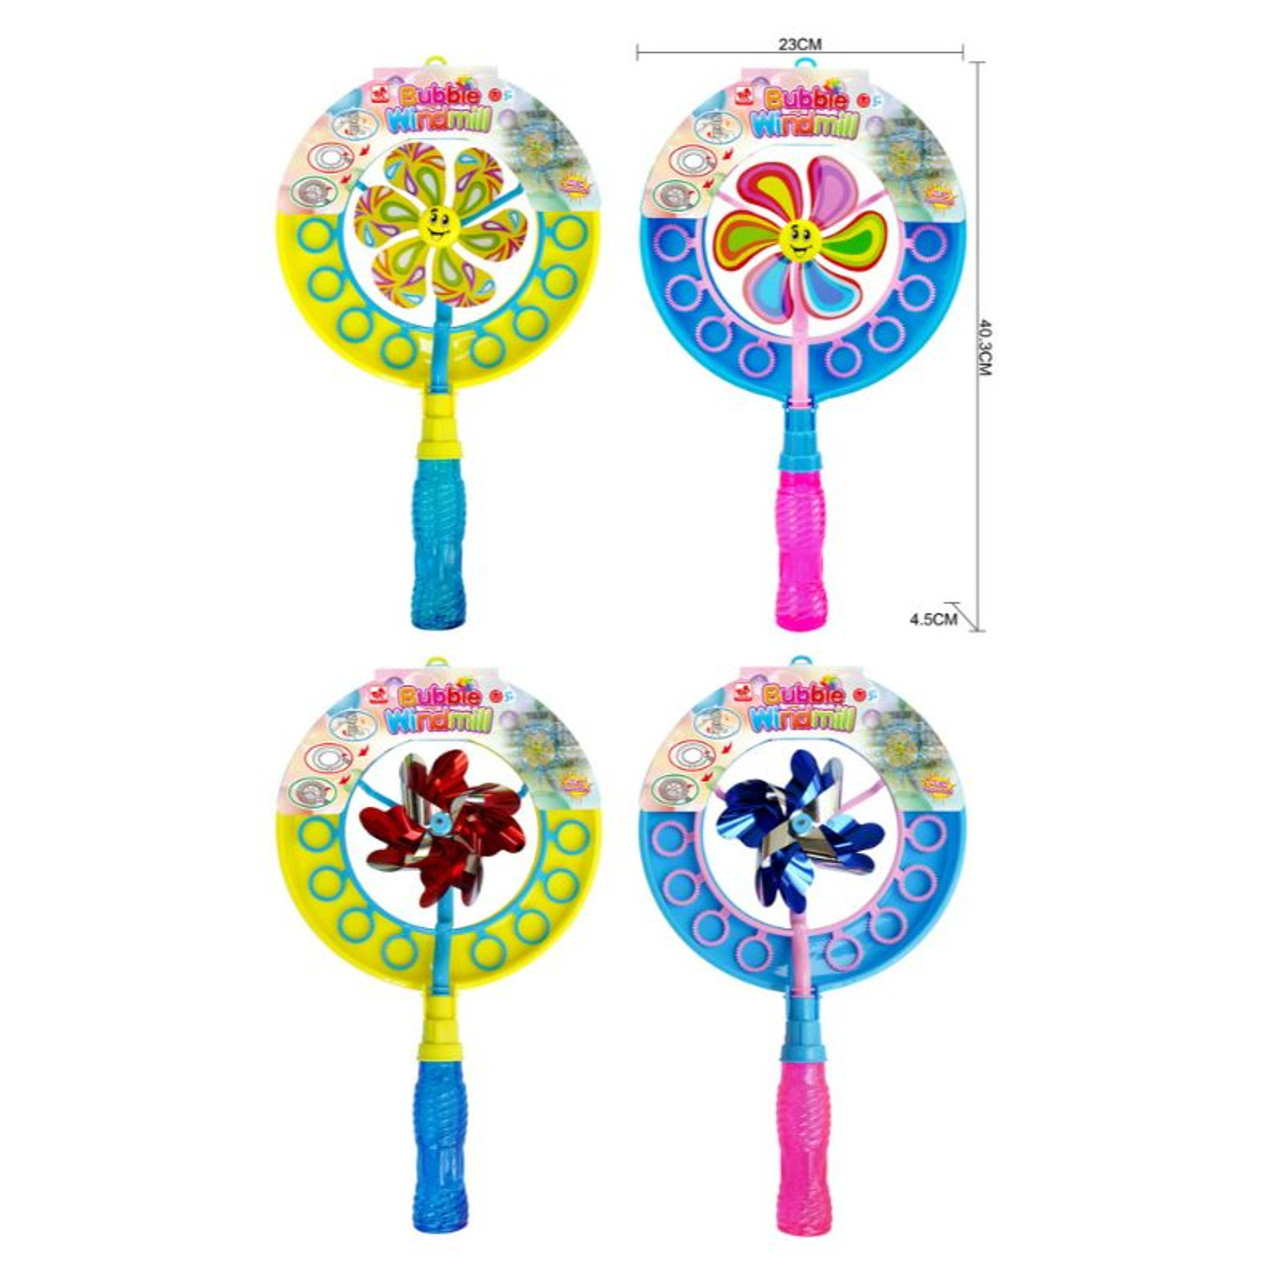 15.5 Inch Bubble Blower and Pinwheel Spinner for Kids with Solution in Handle - 2 Pack